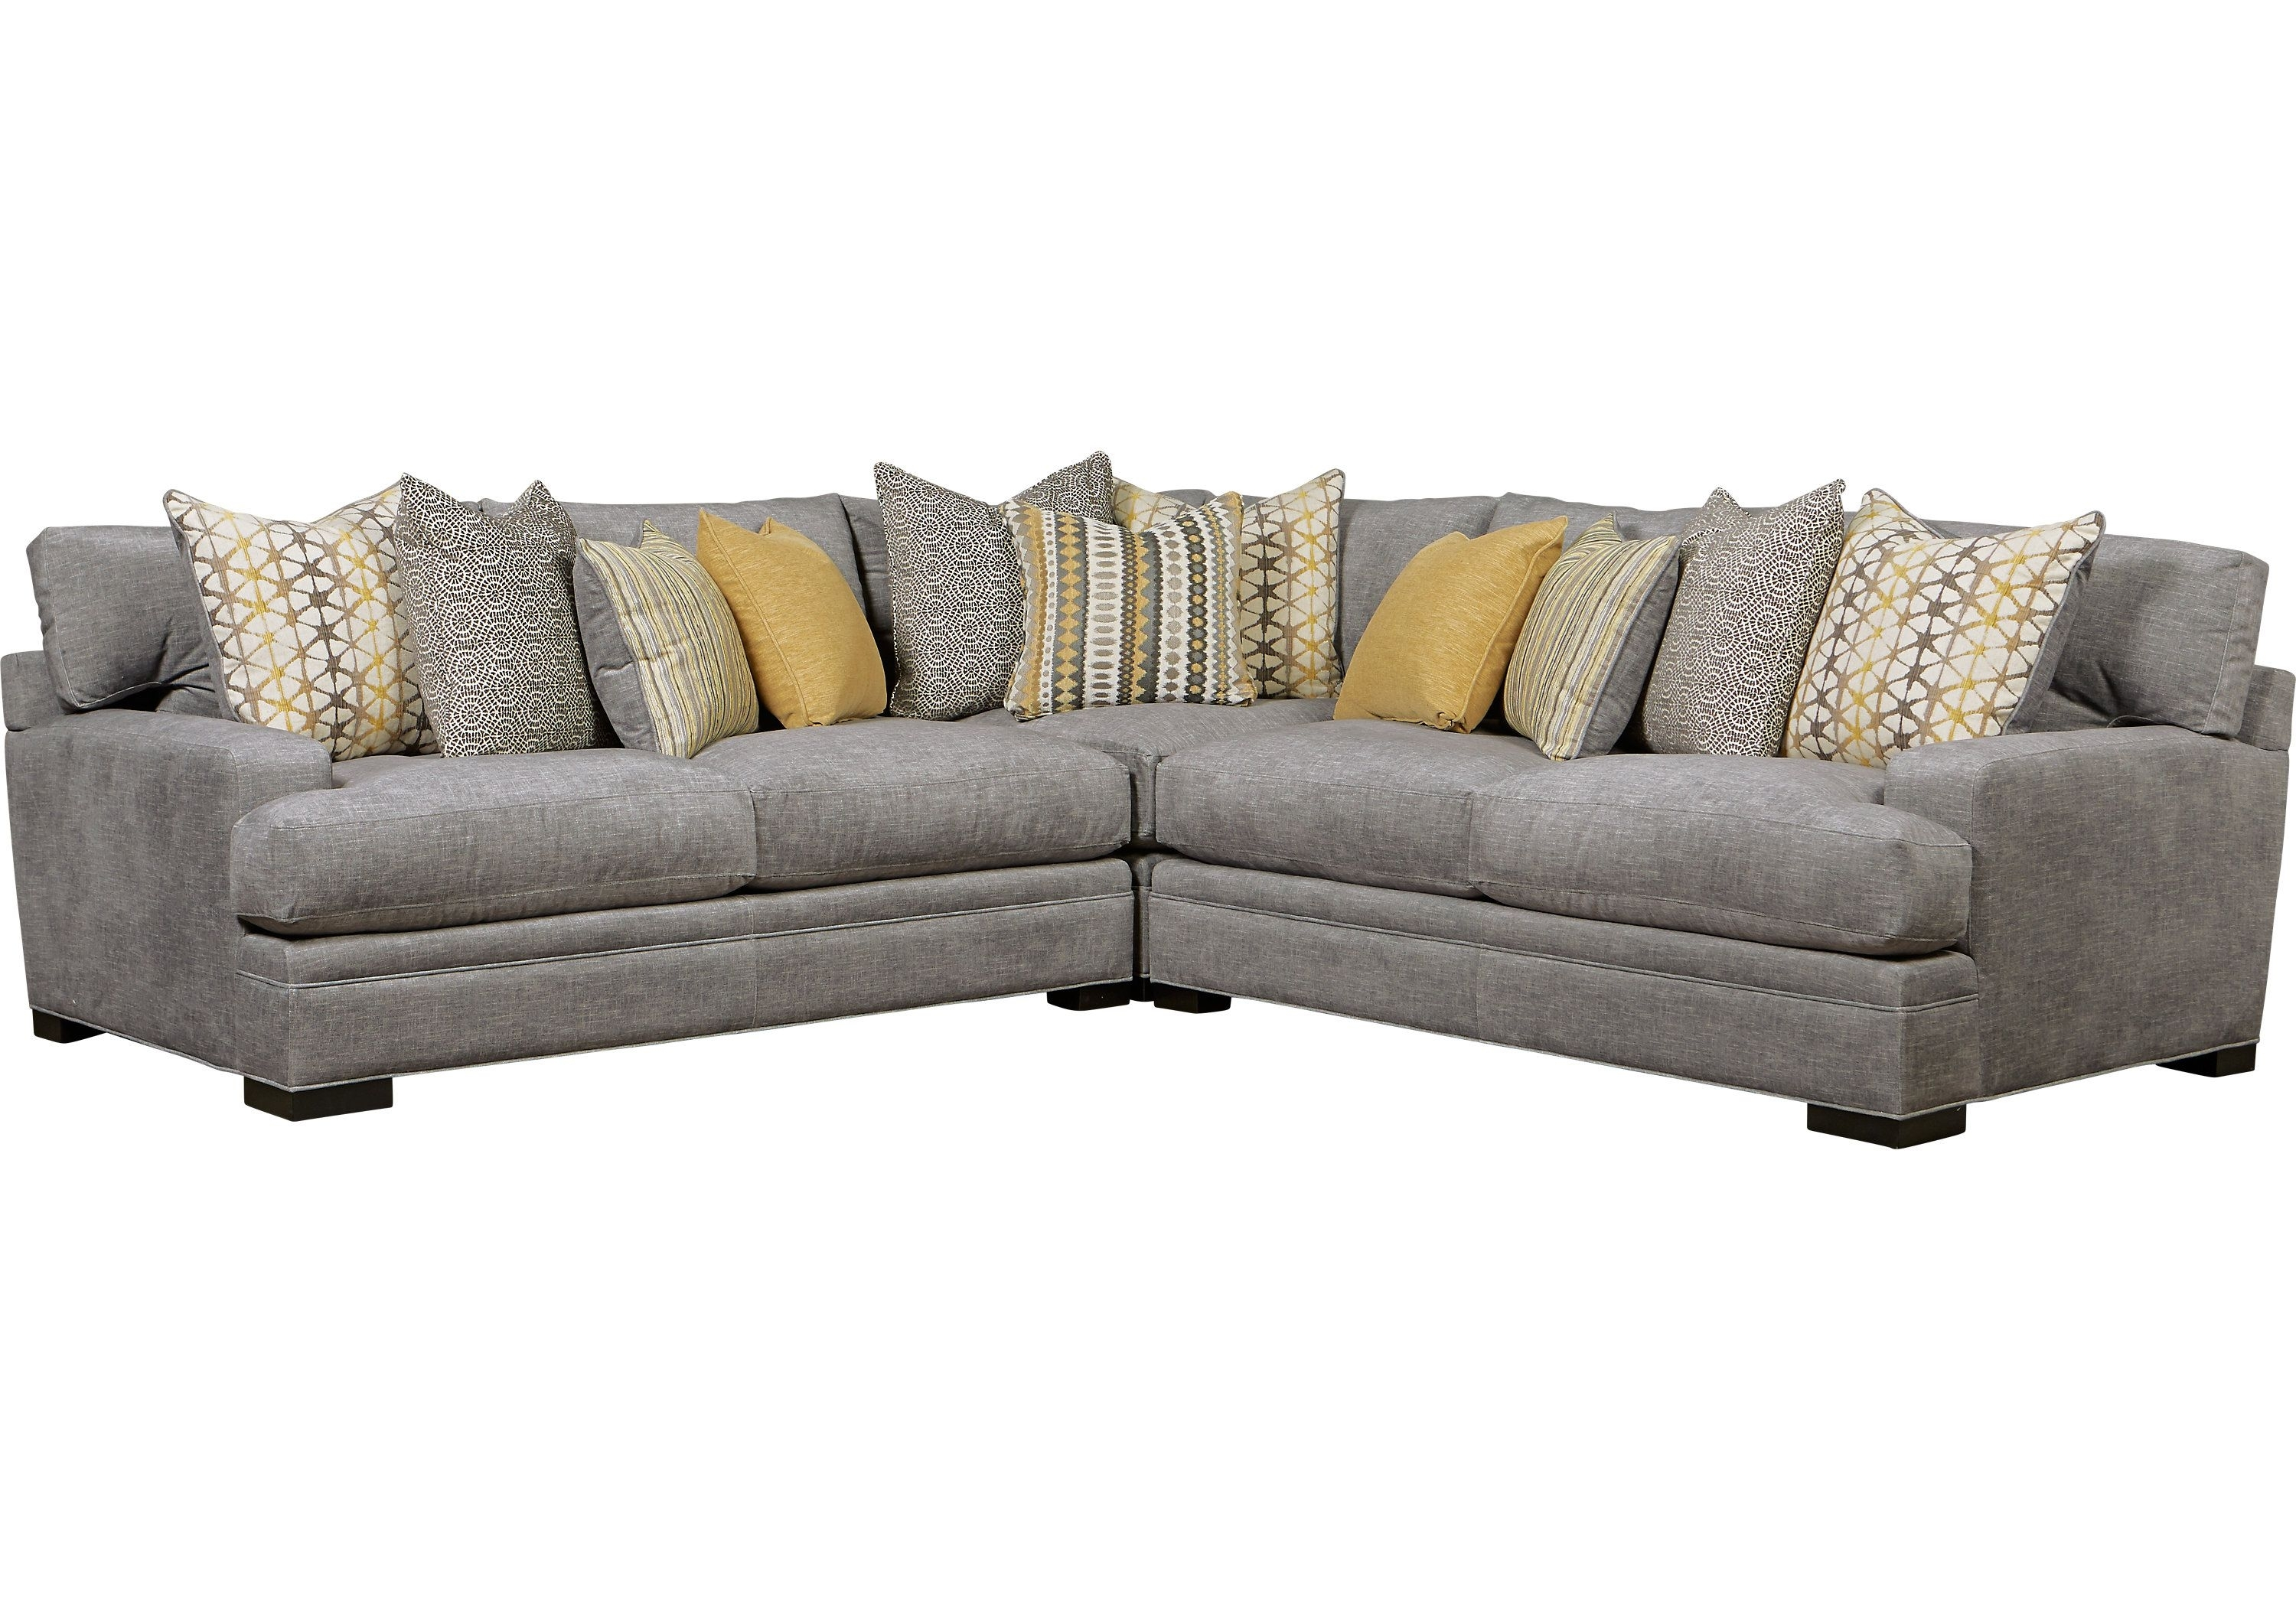 Picture Of Cindy Crawford Home Palm Springs Gray 3 Pc Sectional From Intended For Cohen Down 2 Piece Sectionals (Image 22 of 25)